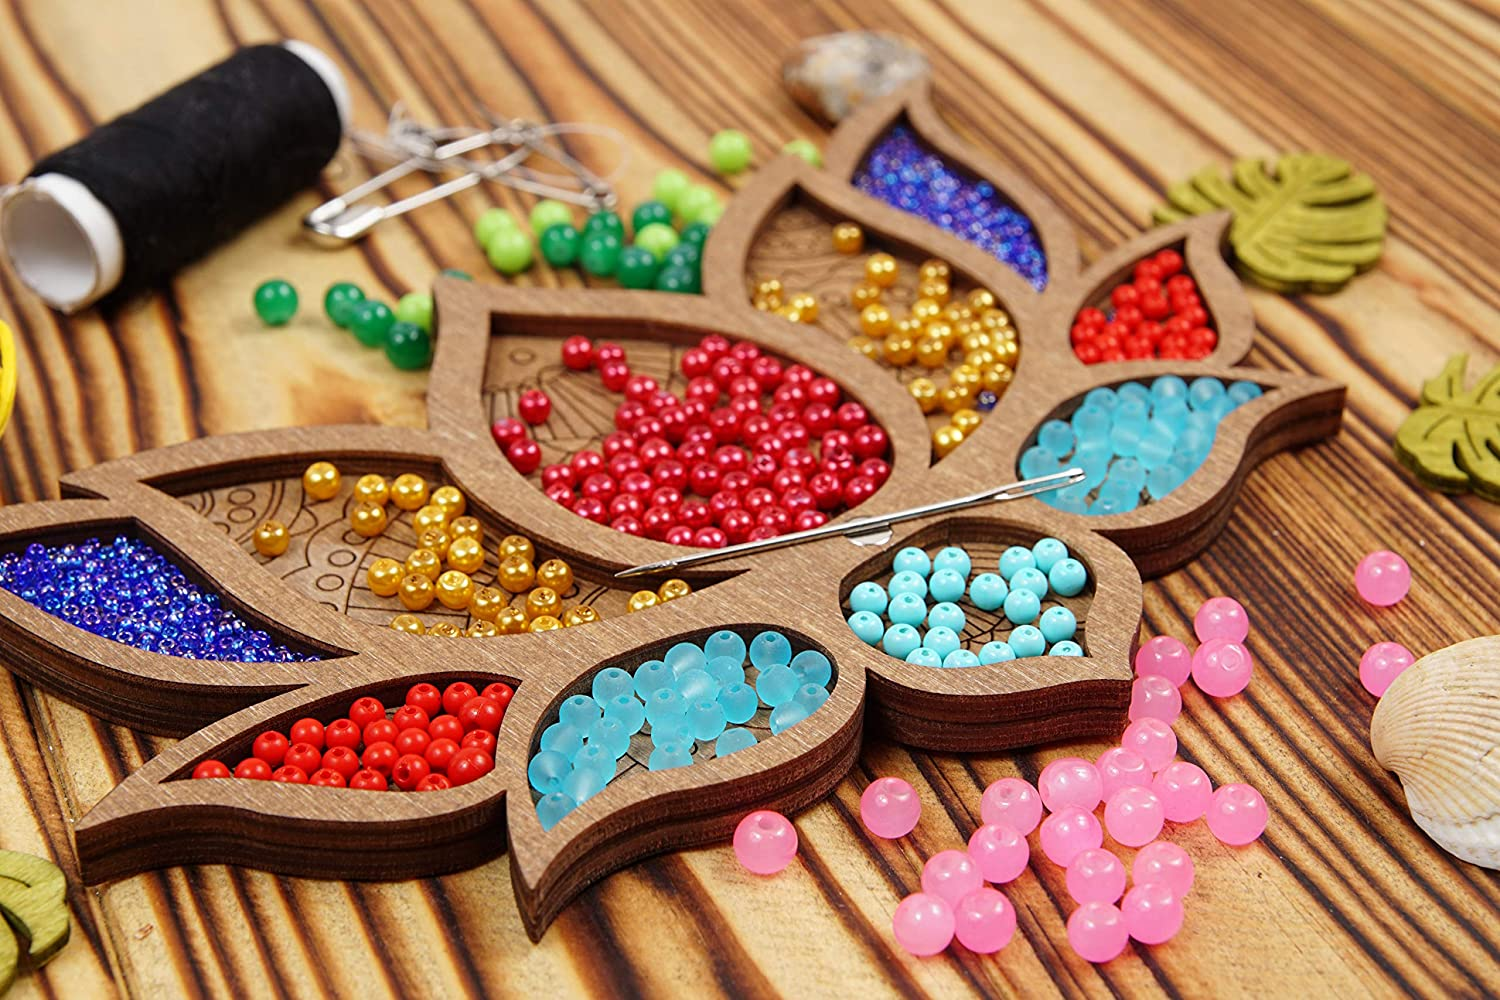 Art Supply Storage Beadwork Craft Gift Jewelry Making Accessory Bead Container Wood Box with Needle Magnet Bead Organizer Wood Lotus